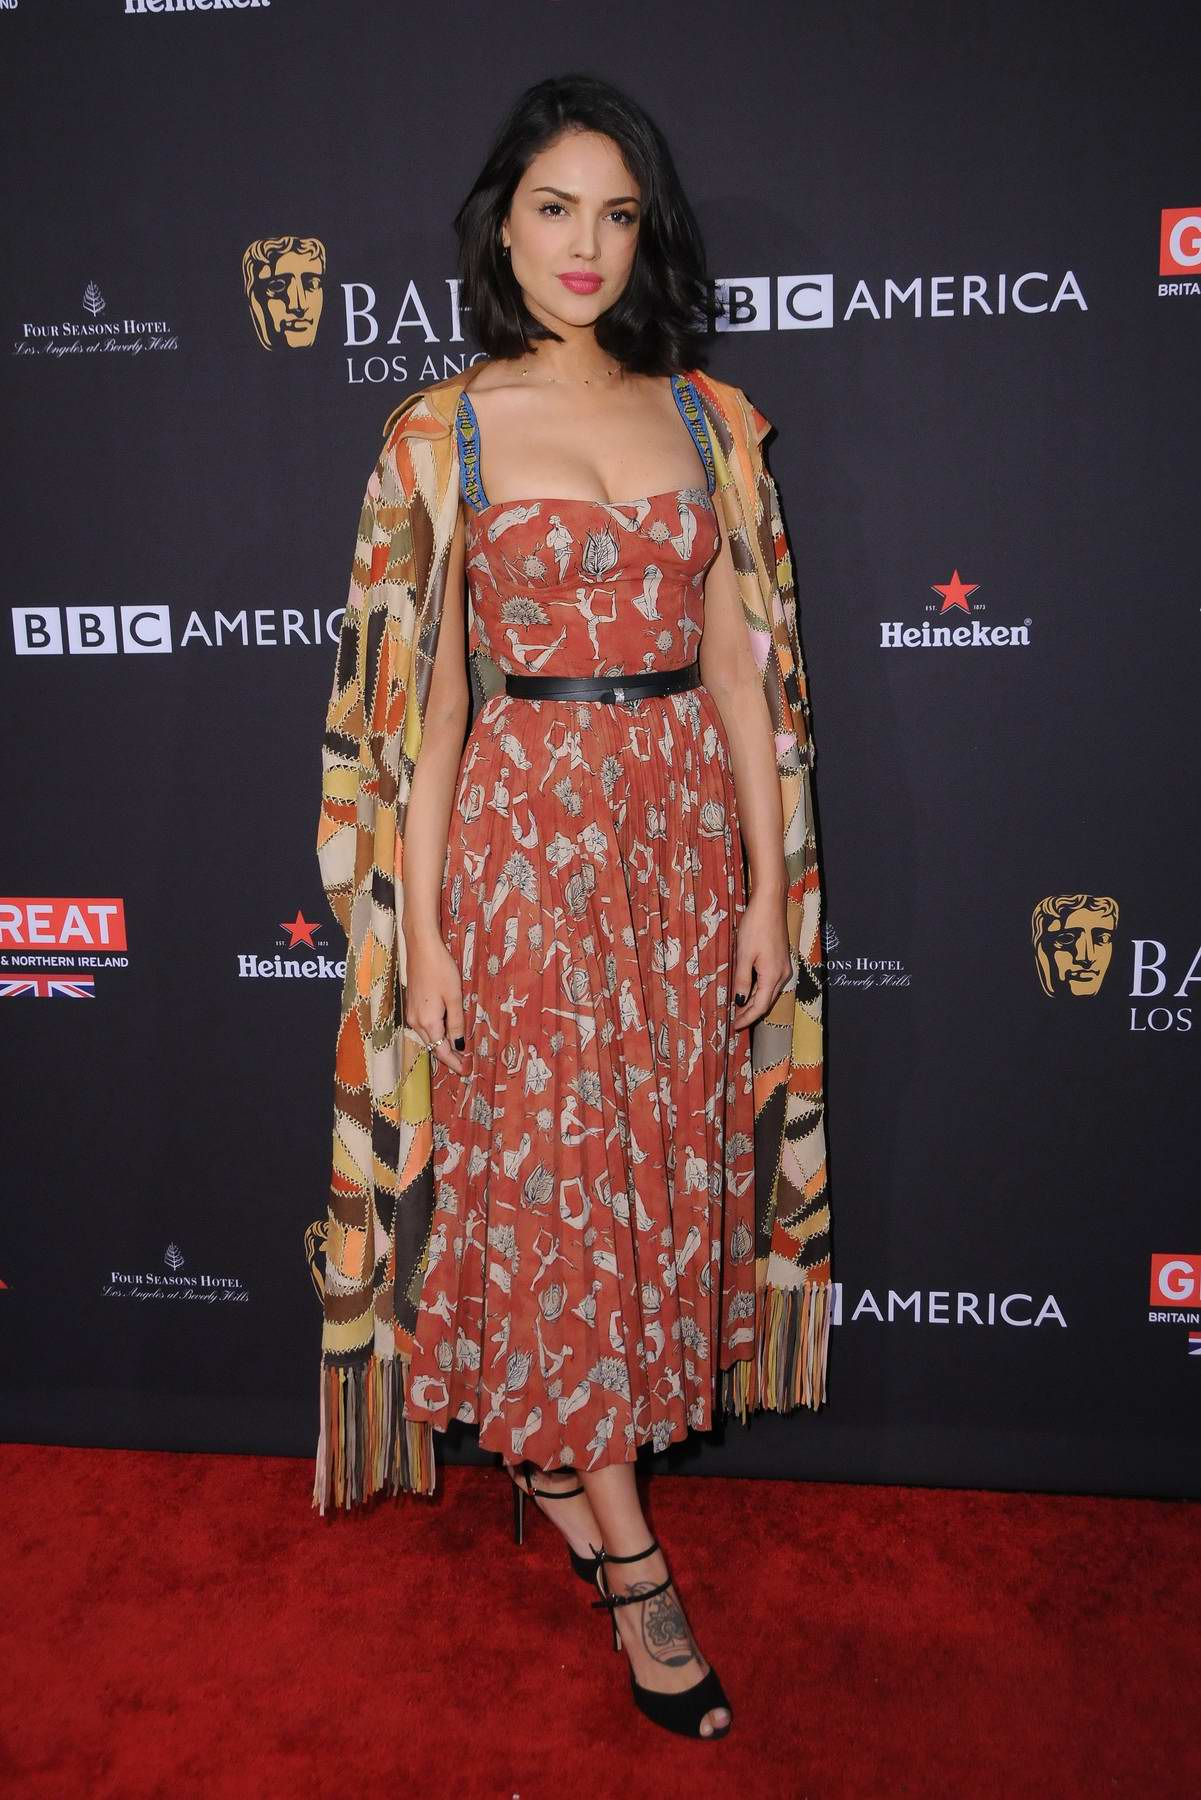 Eiza Gonzalez attends The BAFTA 2018 Los Angeles tea party at the Four Seasons Hotel in Beverly Hills, Los Angeles